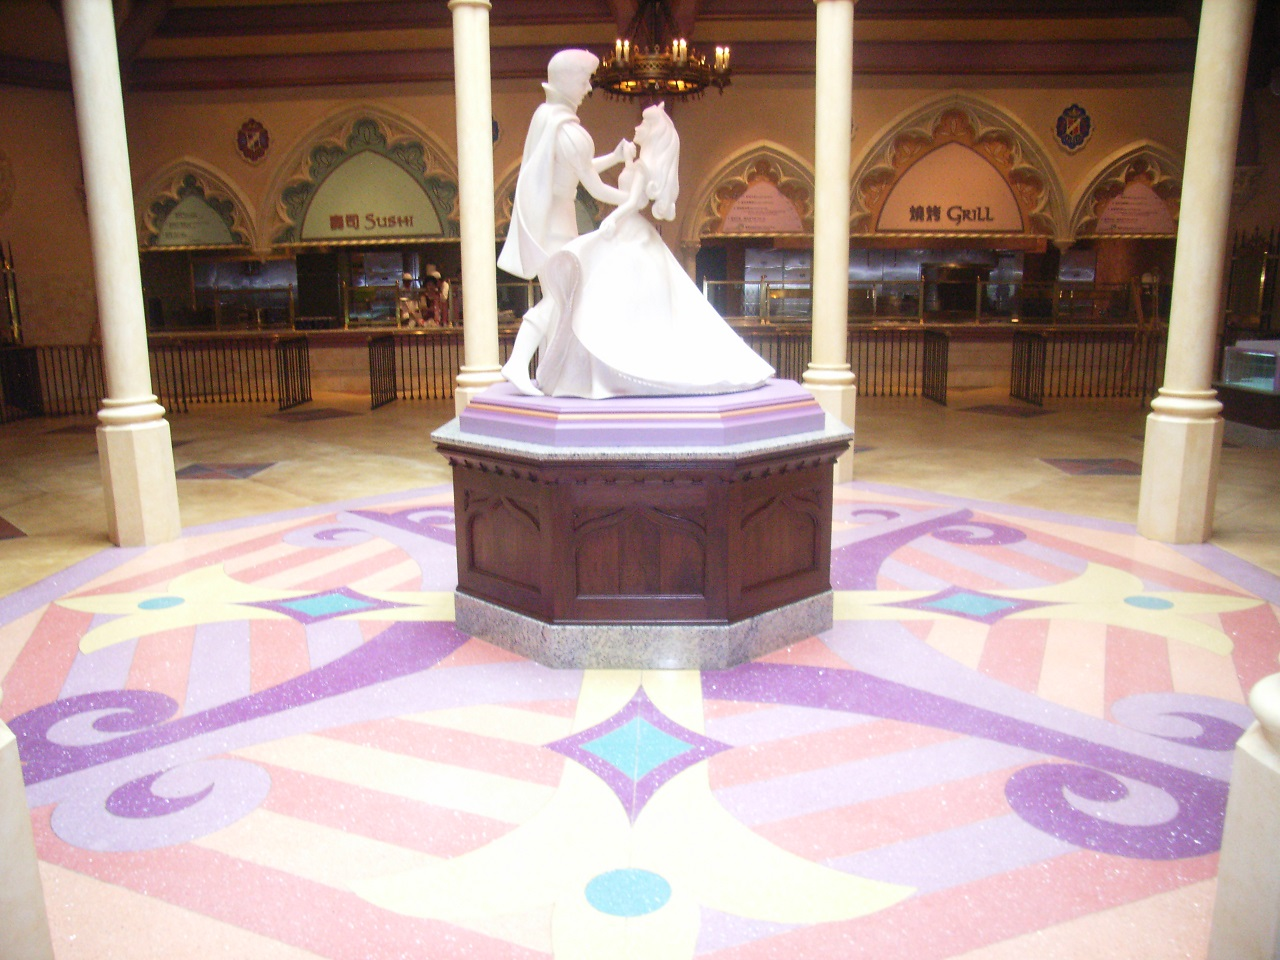 Wide shot of decorative flooring topped by a statue of a prince and princess